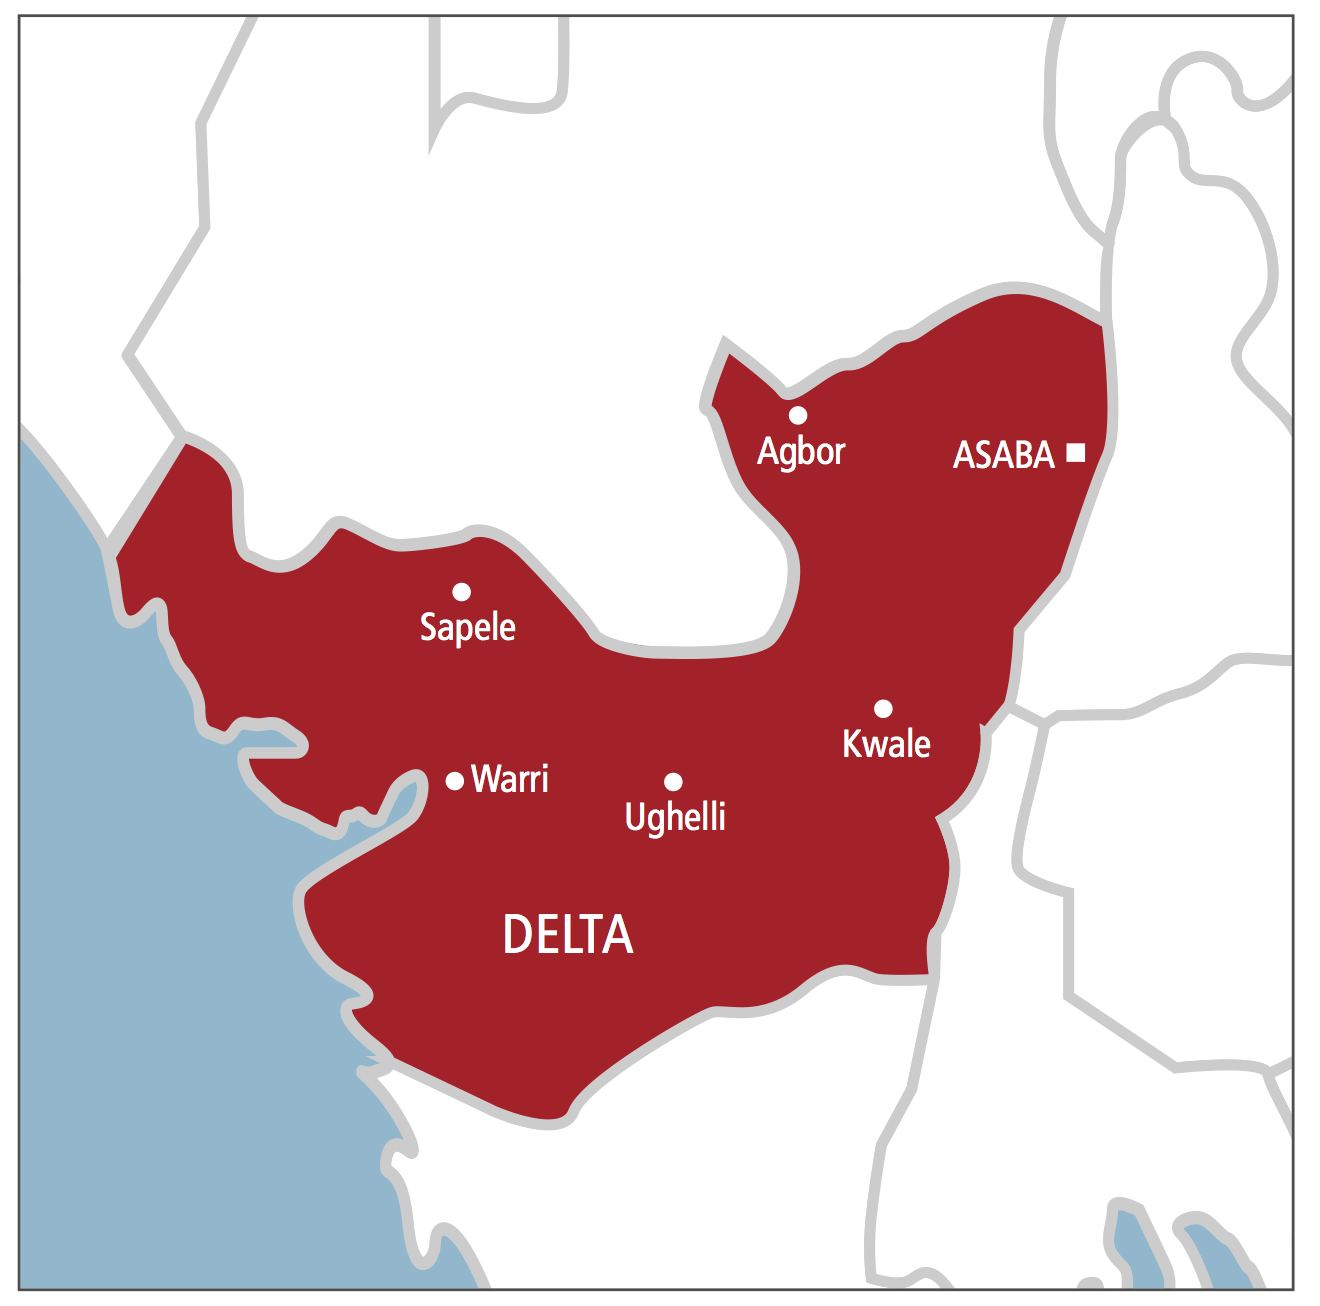 ogun state map with The Violent Road Nigeria South South on 3 furthermore Yobe State Zip Code Map besides Figs also The Violent Road Nigeria South East furthermore 2 6401346 49592.